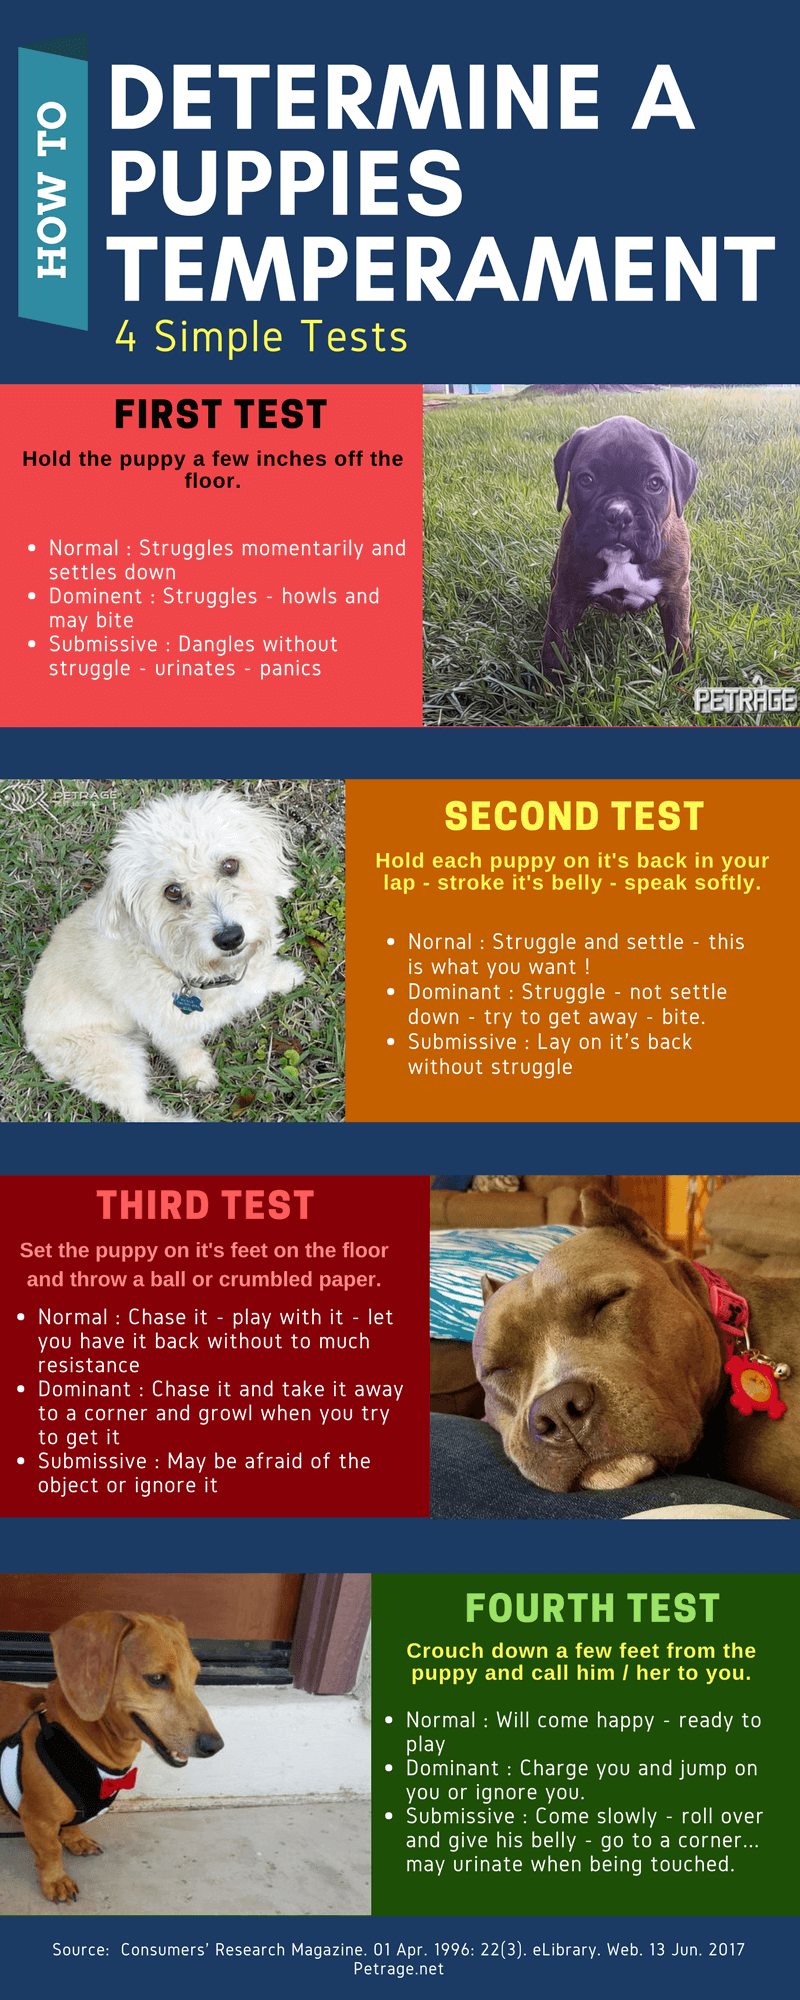 4 Simple Tests To Determine A Puppy S Temperament In 2020 Dog Care Tips Dog Training Dog Training Obedience